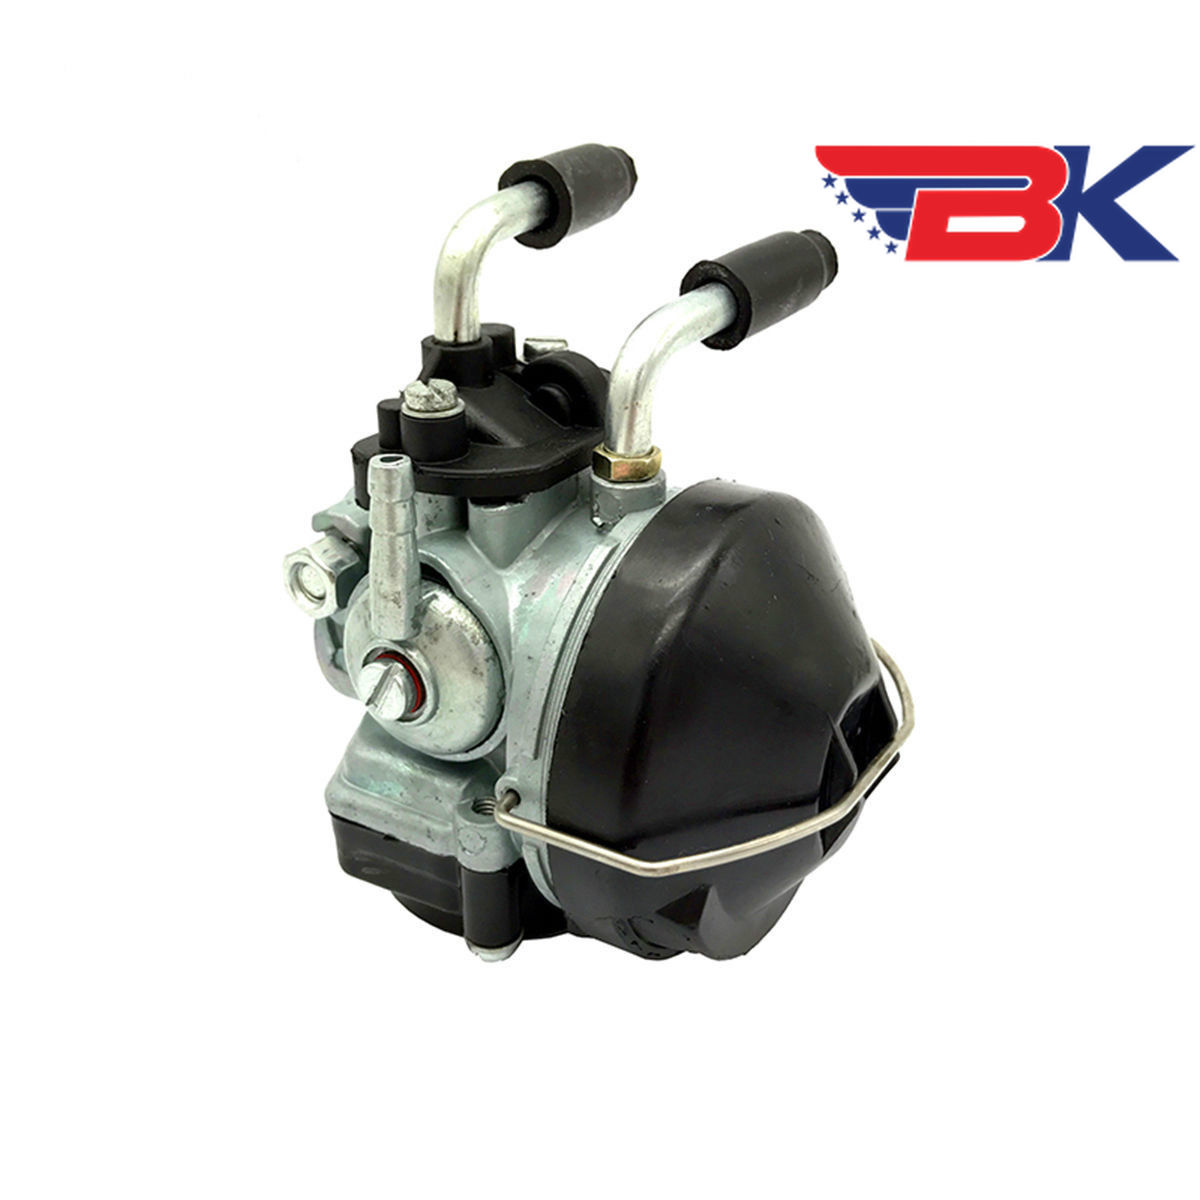 Carburetor For POLINI 19 PHBG 19mm MBK 51 PEUGEOT 103 DELLORTO Carb NEUF